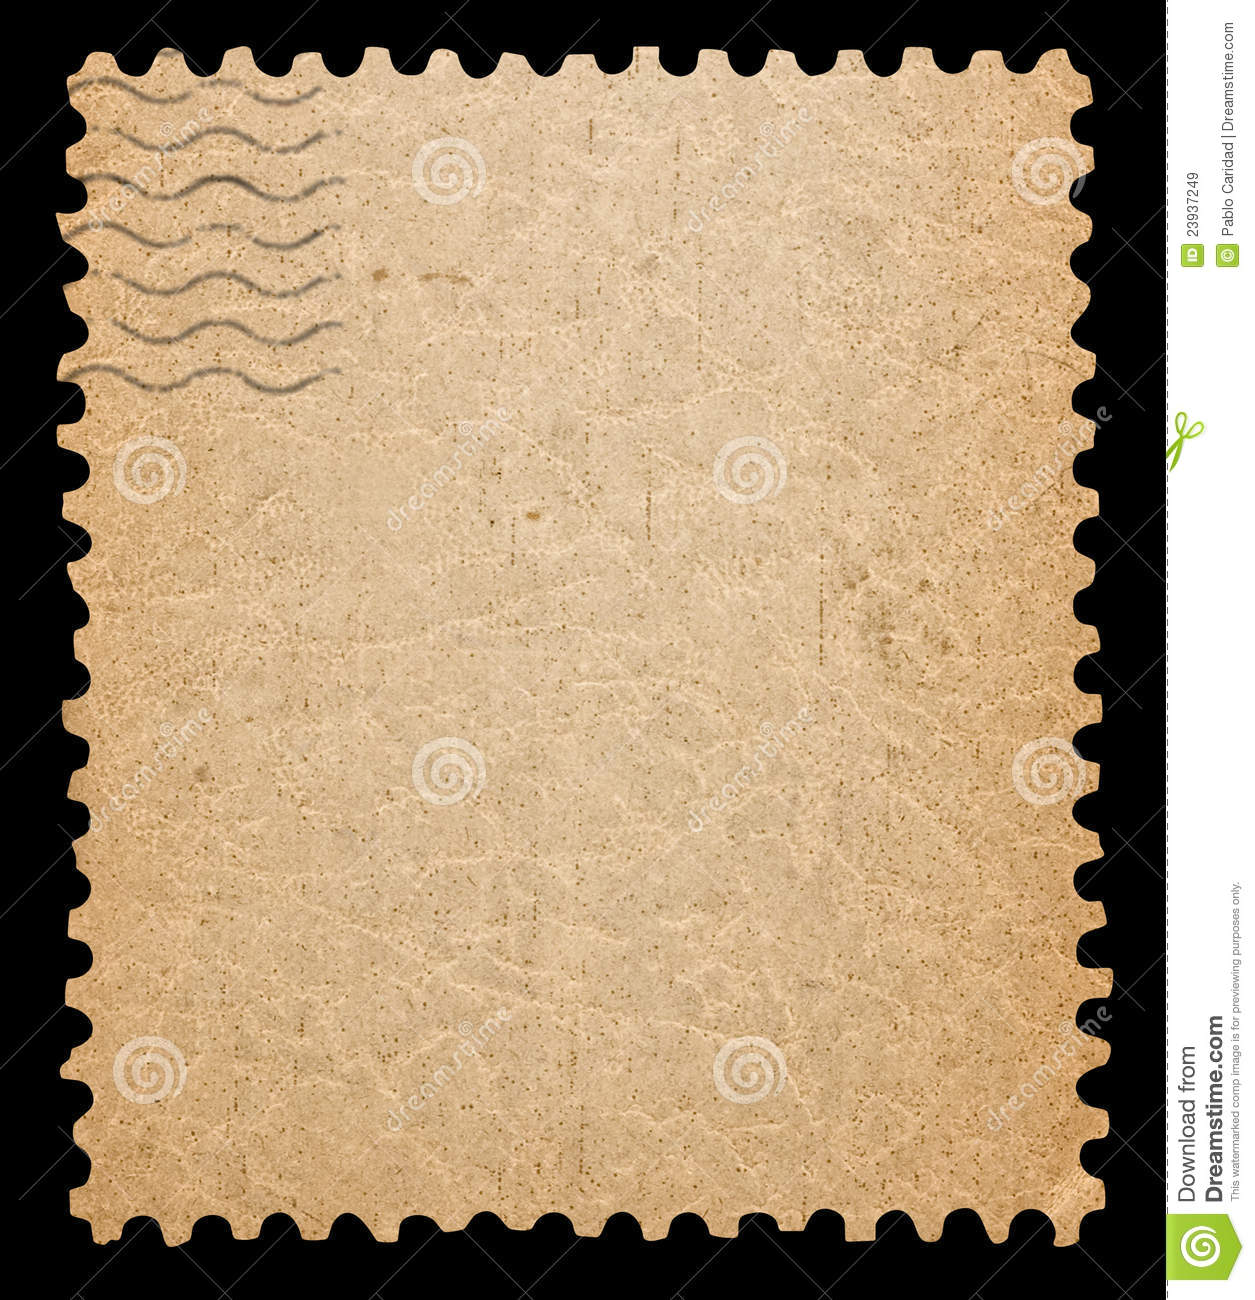 Blank Postage Stamp  Royalty Free Stock Images   Image  23937249